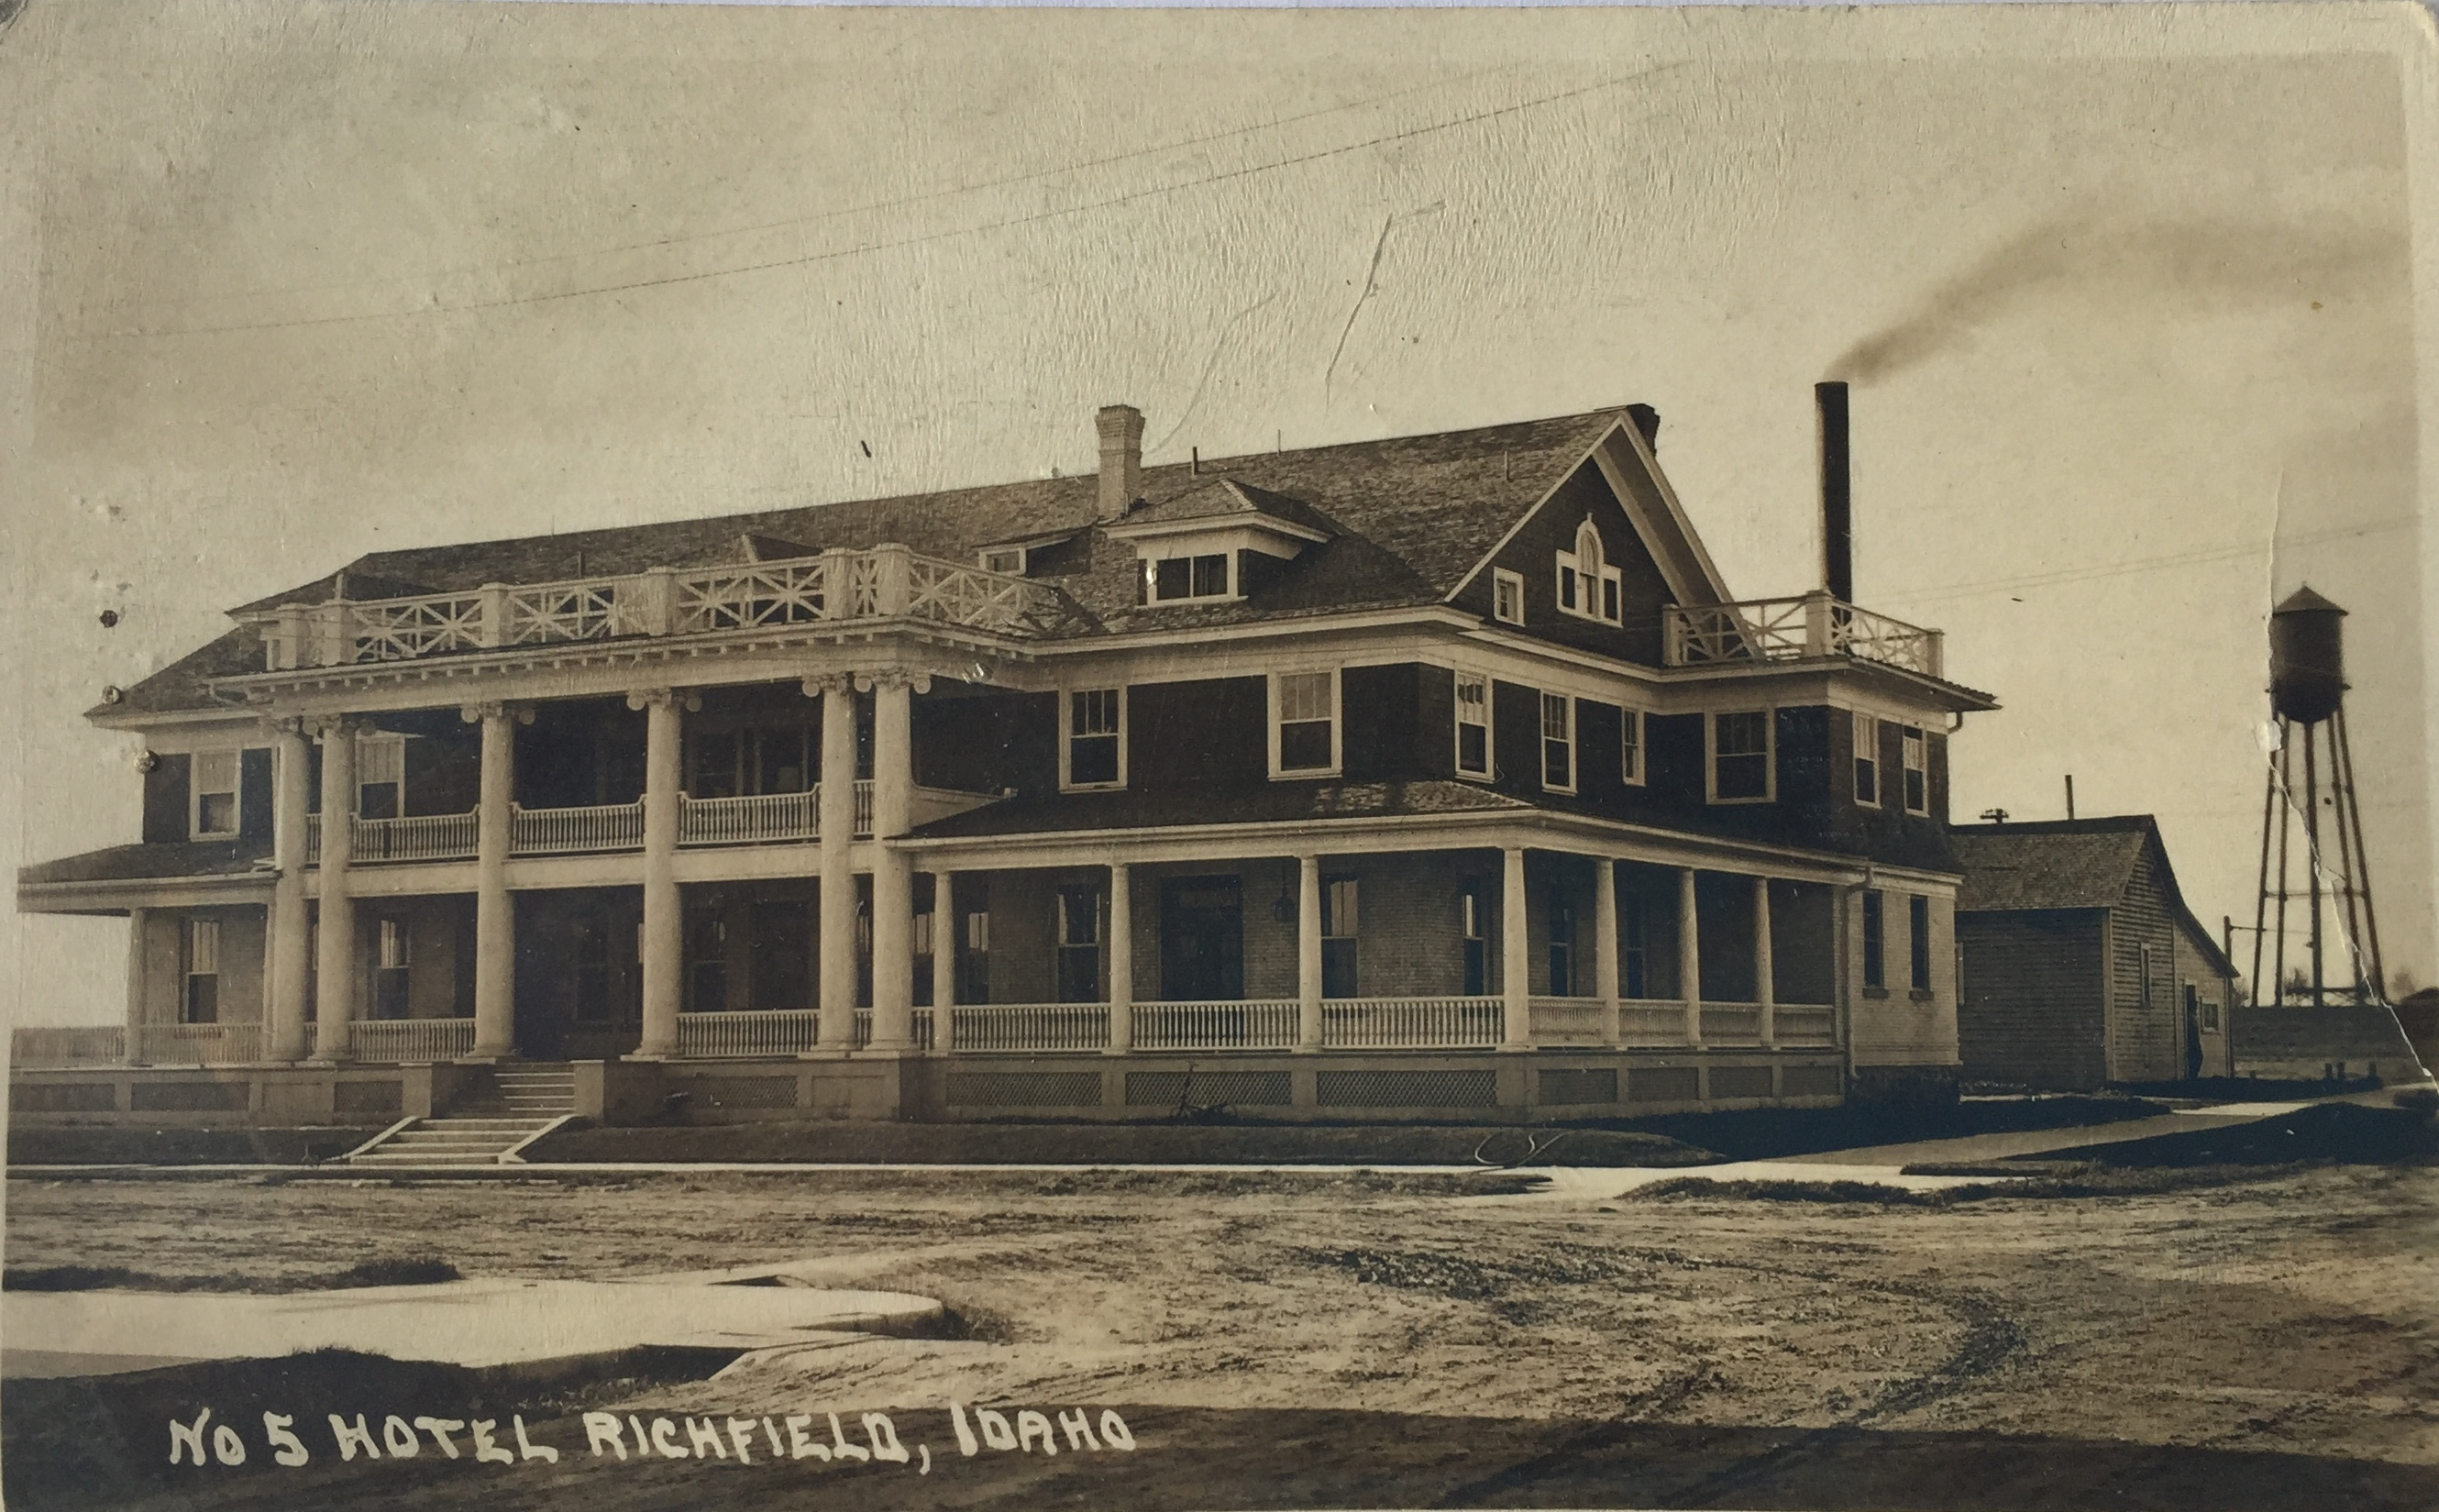 Historic Richfield, Idaho Hotel